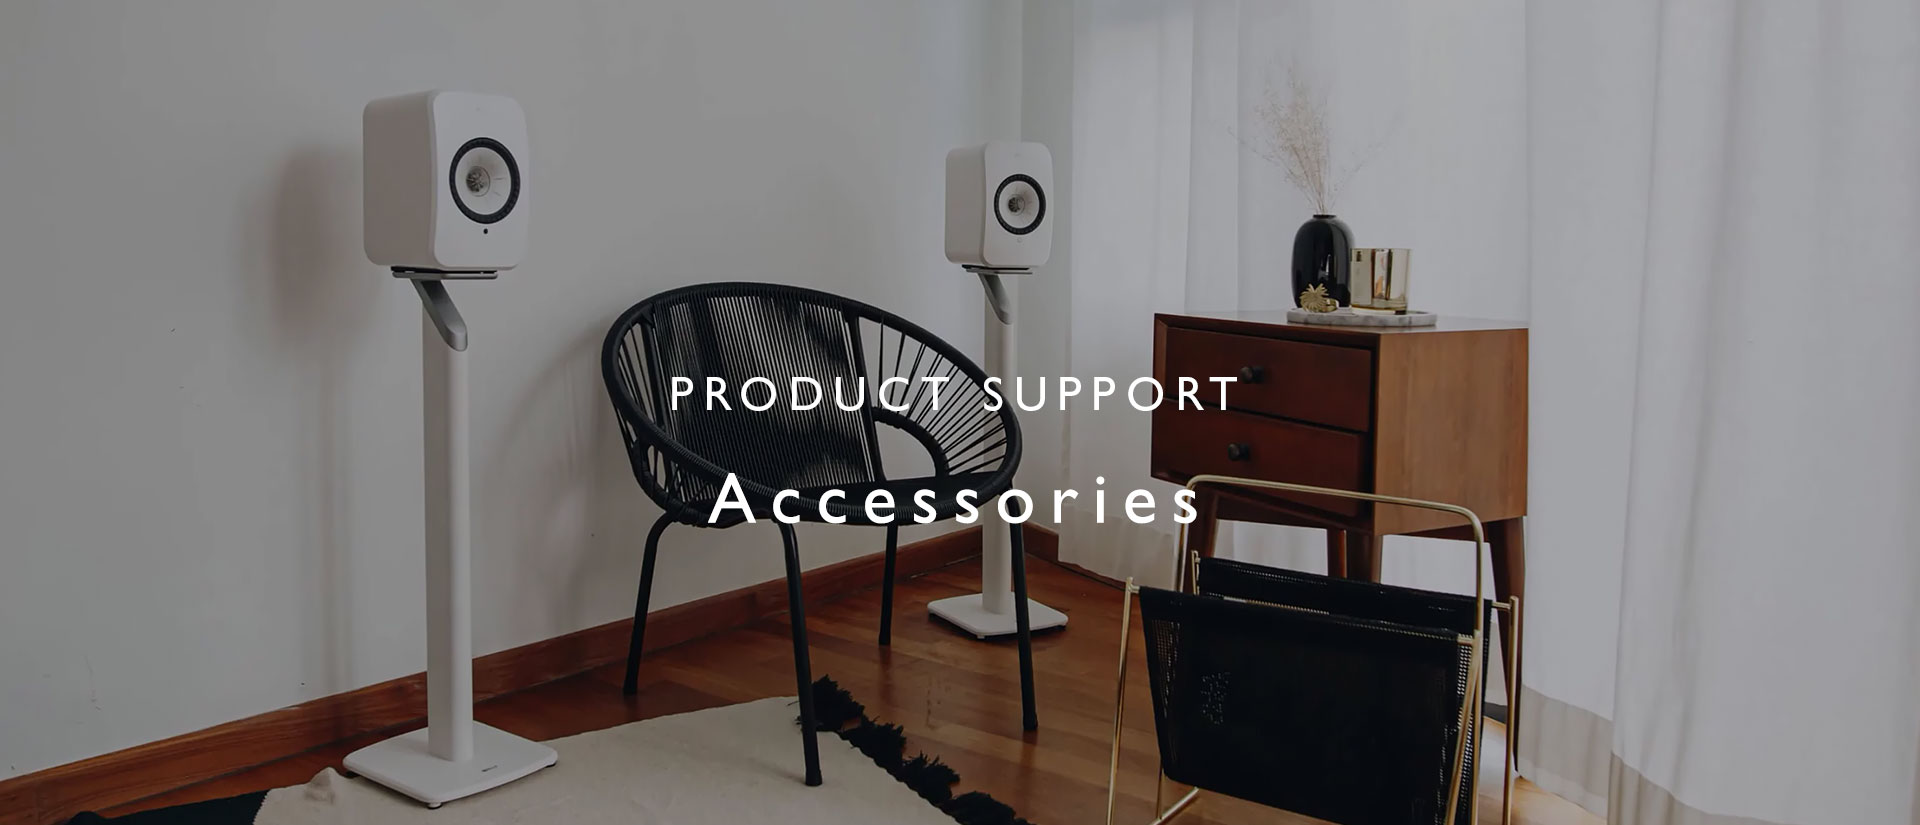 KEF Stands and accessories Product Support and Downloads